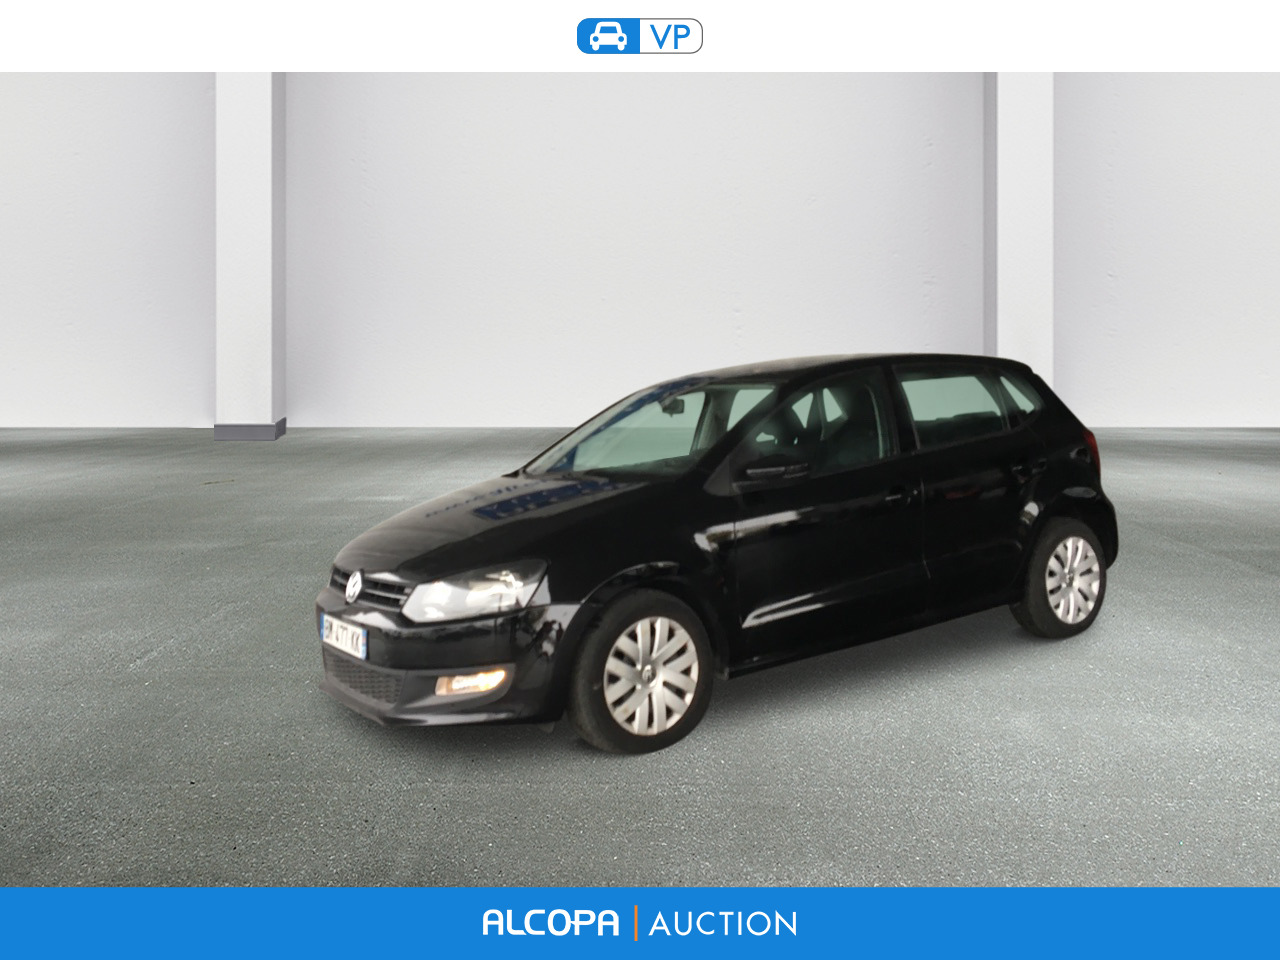 volkswagen polo 1 6 tdi 90 cr fap confortline alcopa auction. Black Bedroom Furniture Sets. Home Design Ideas